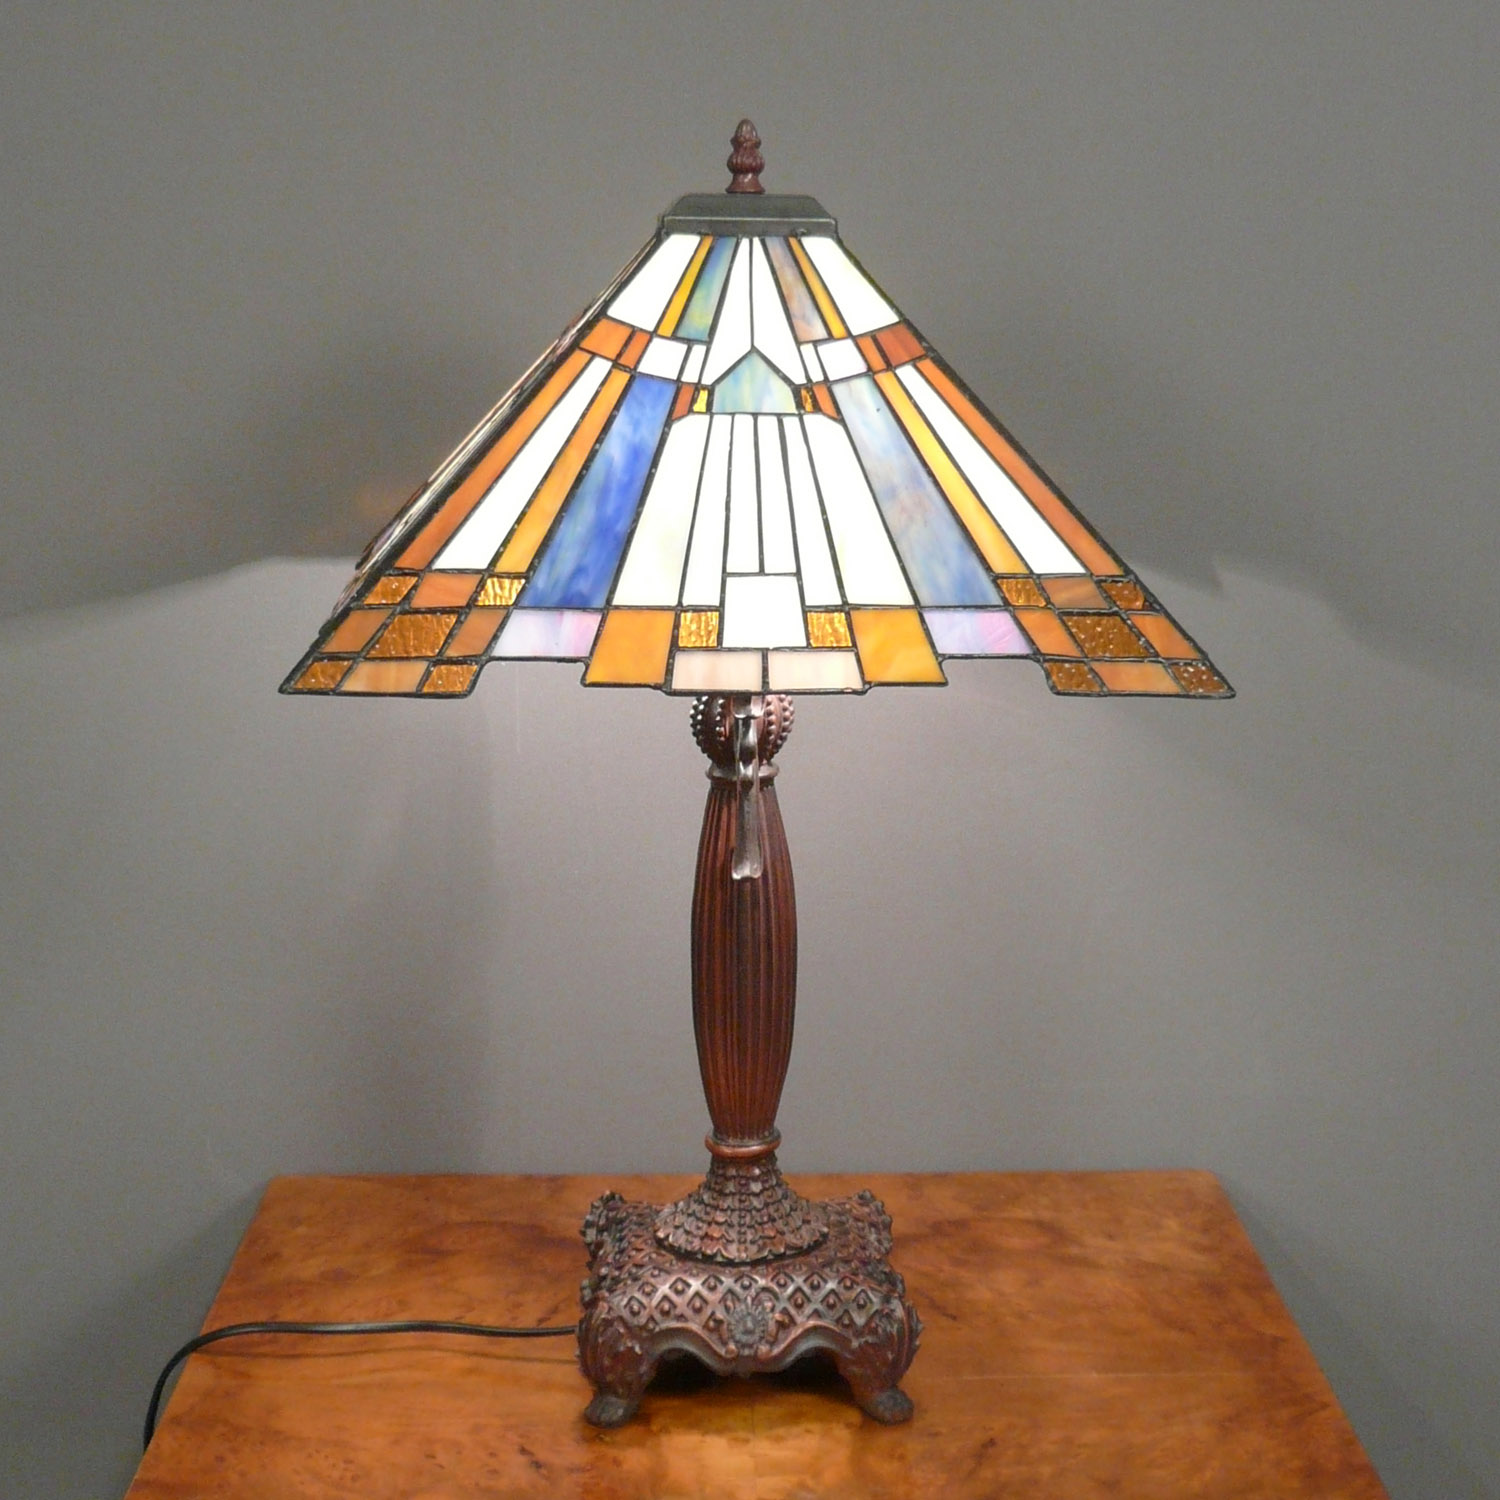 Tiffany lamp art deco lamps floor chandelier for Art deco style lamp